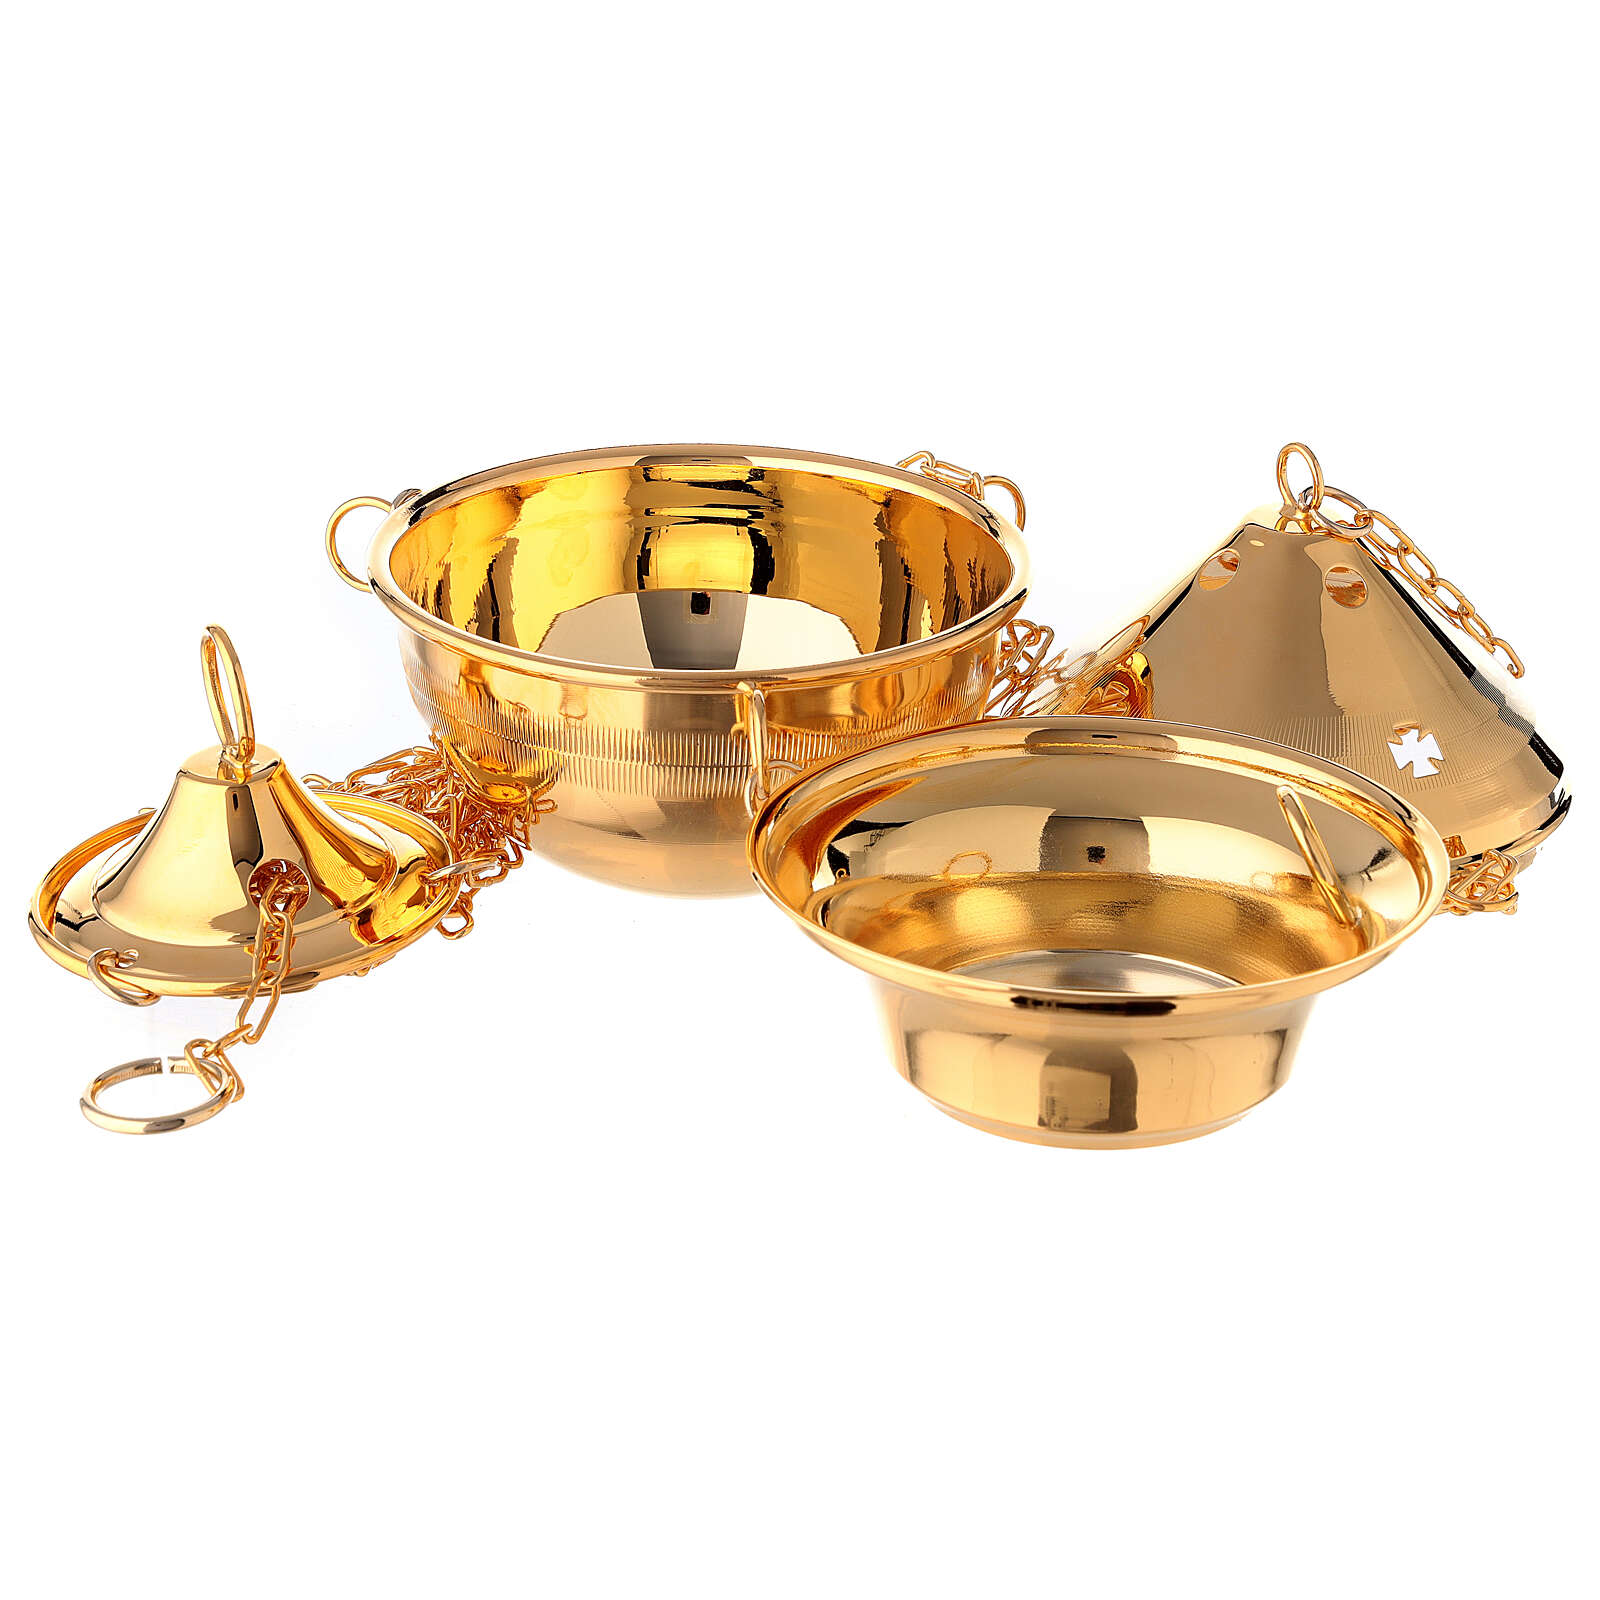 Gold plated brass thurible with incense boat 3